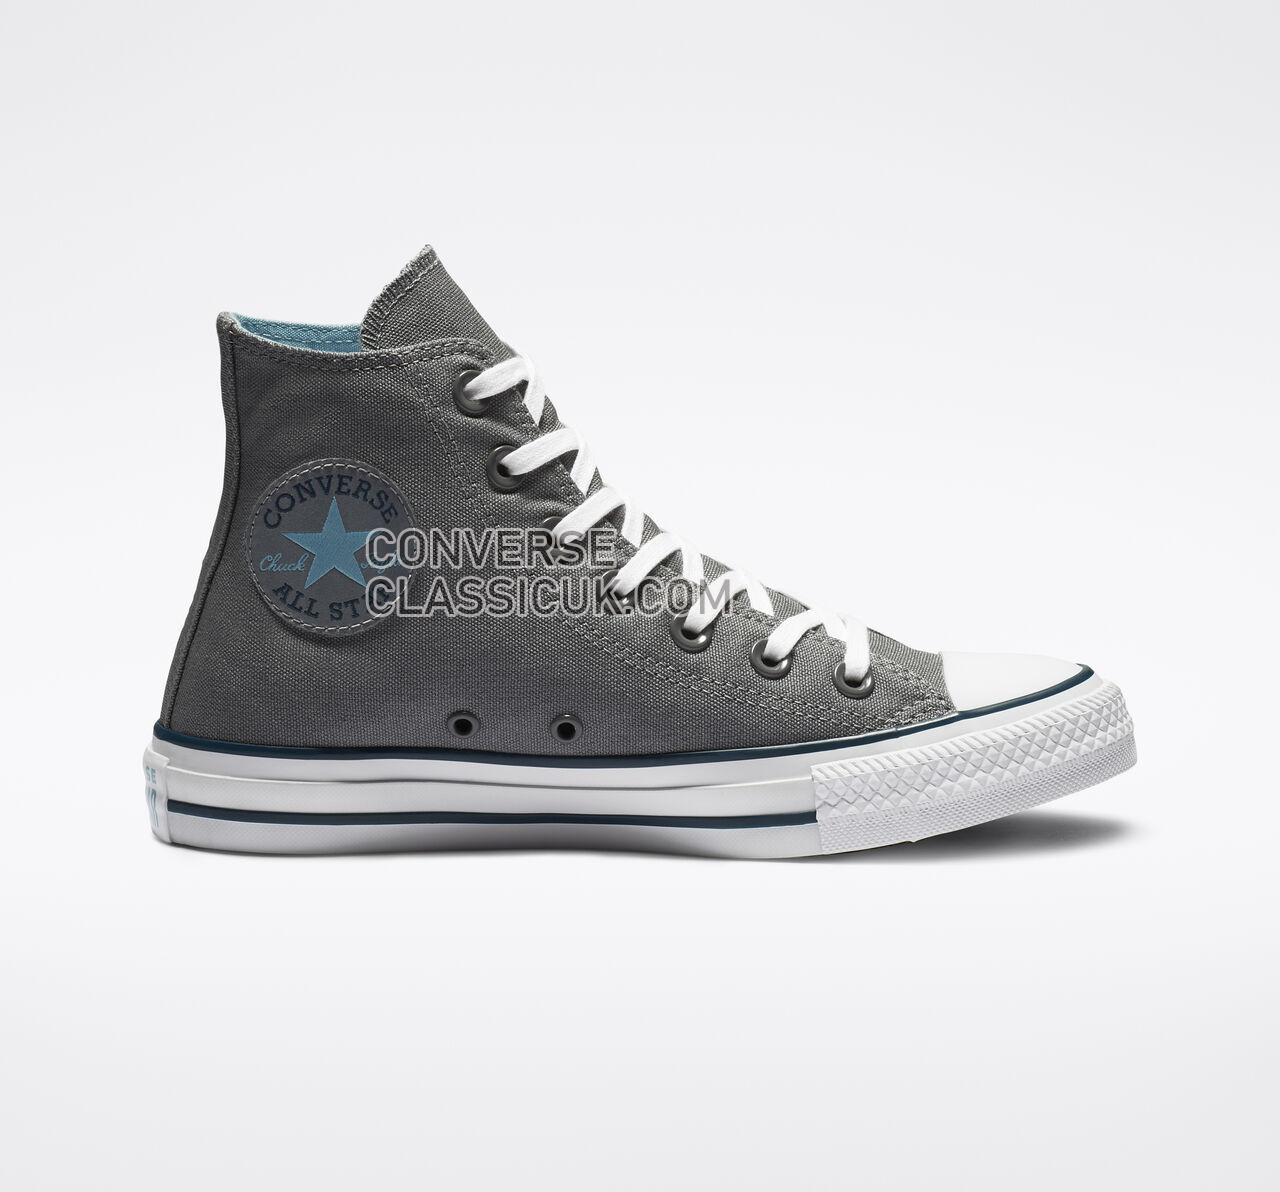 Converse Chuck Taylor All Star Seasonal Color High Top Mens Womens Unisex 162451F Cool Grey/Shoreline Blue Shoes